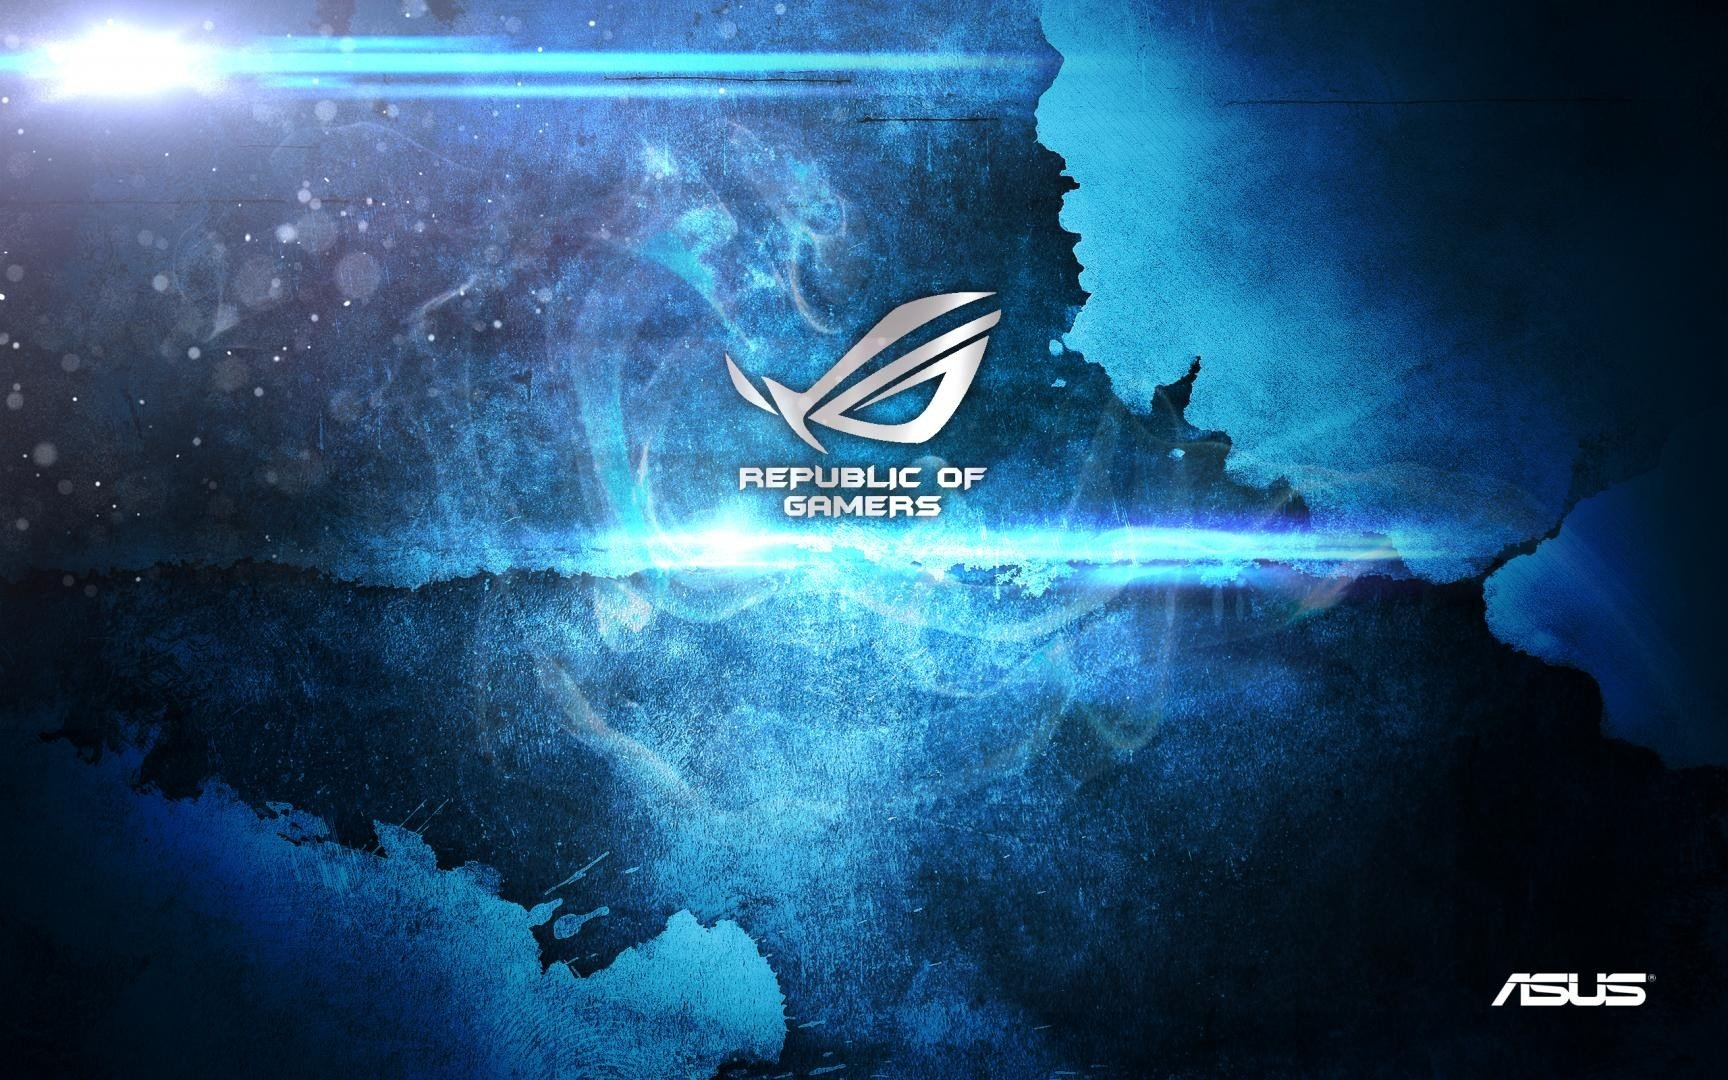 ASUS ROG Republic Of Gamers ASUS HD Wallpapers Desktop